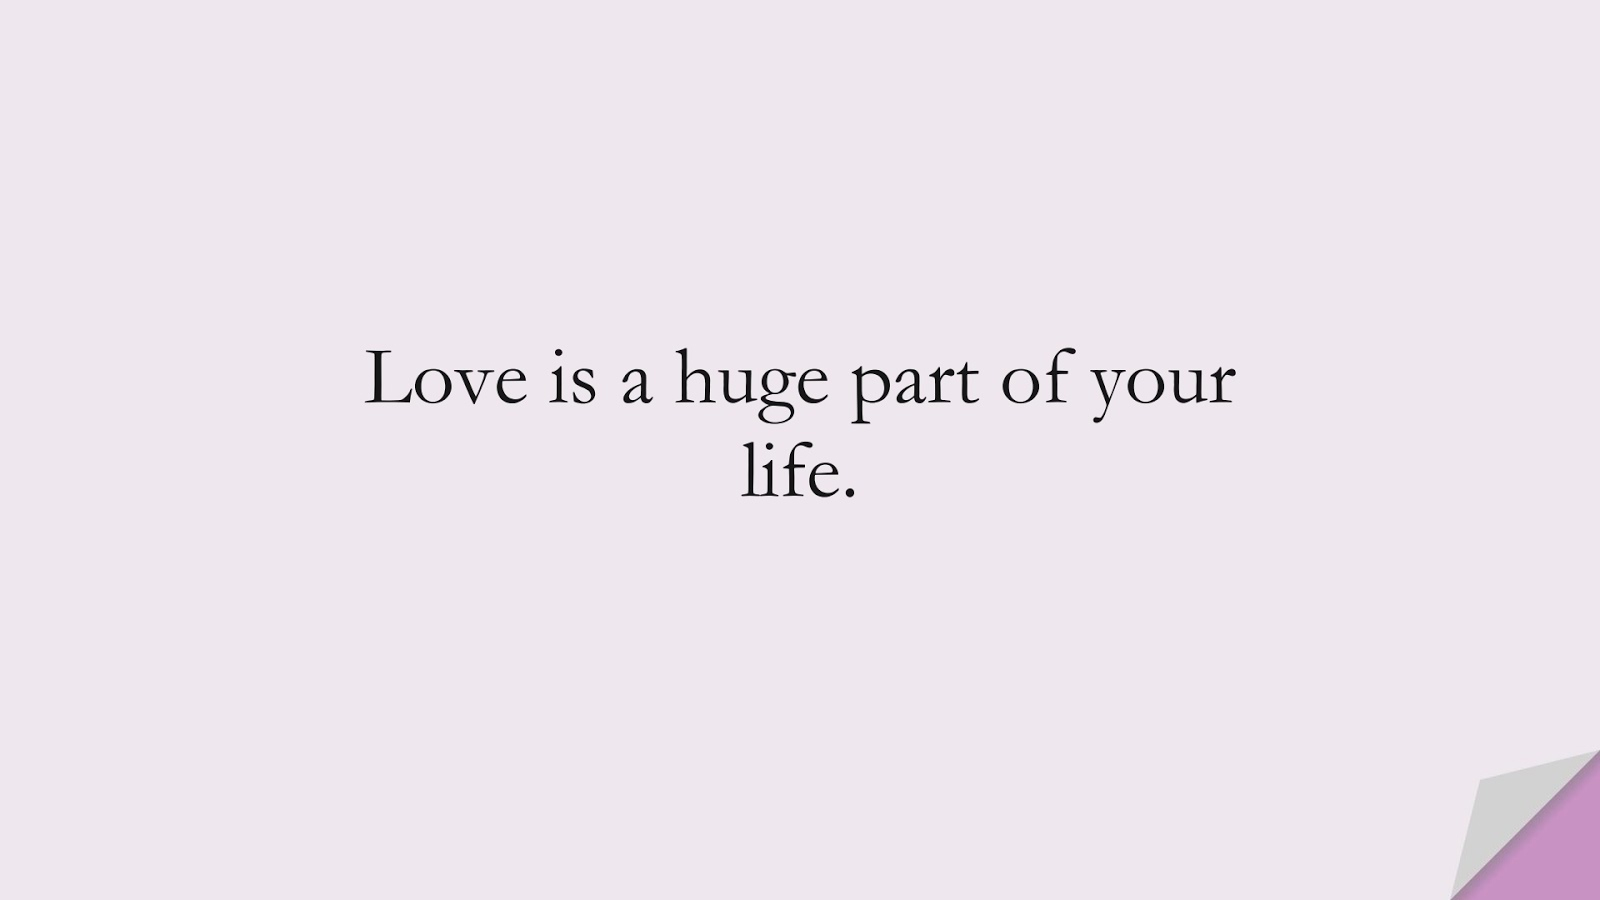 Love is a huge part of your life.FALSE